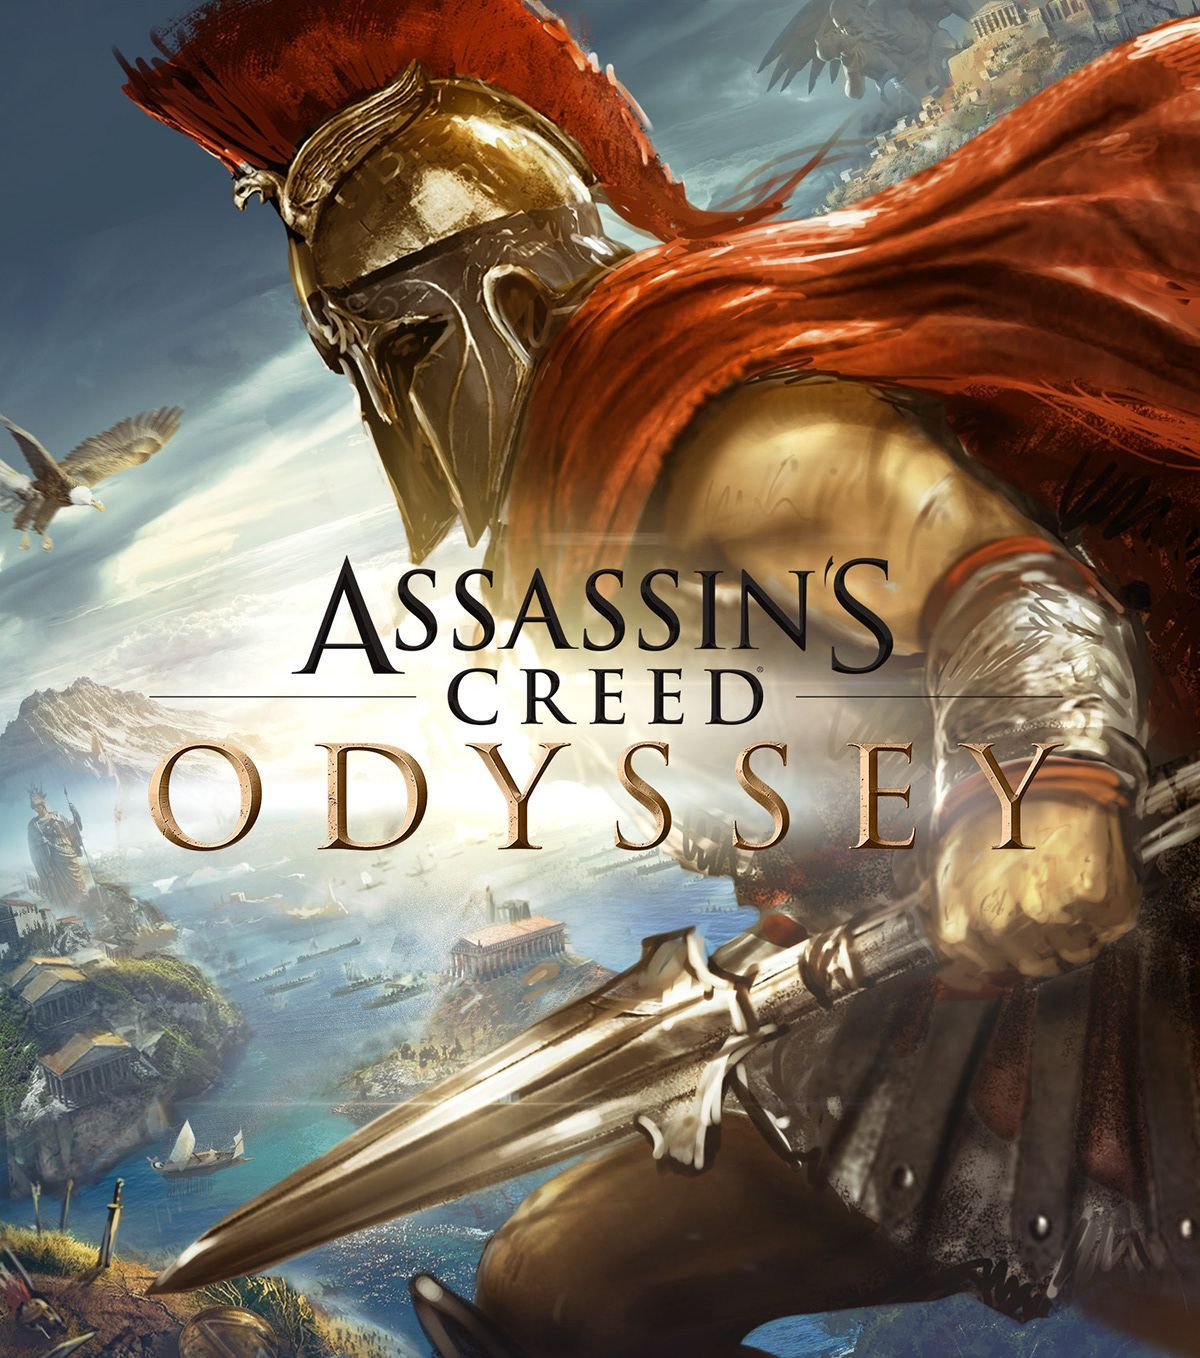 Pin By مؤيد العراقي On Gaming Pc Assassins Creed Assassins Creed Odyssey Assassin S Creed Wallpaper